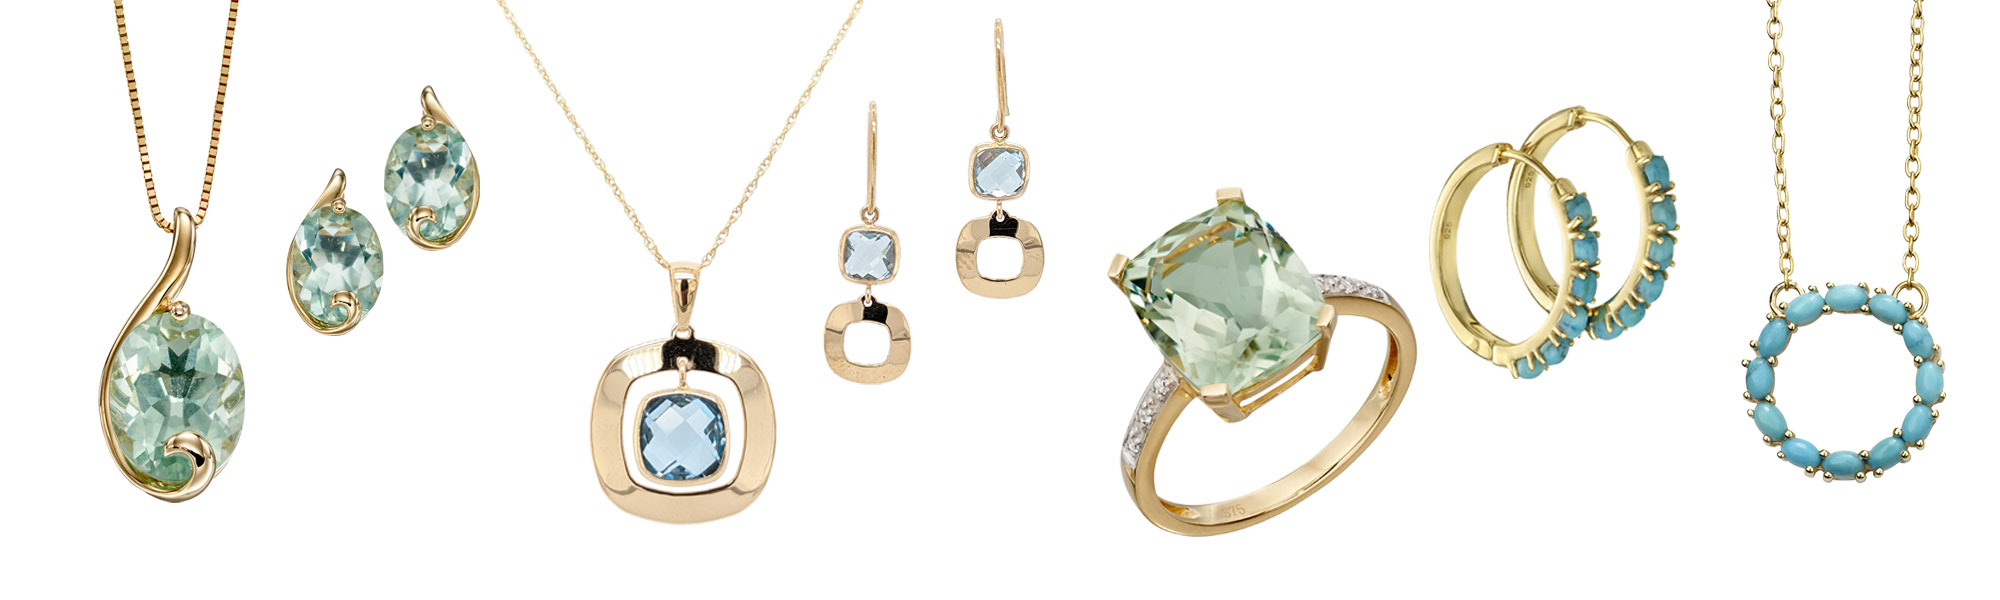 Banner sping into colour From Sally Thorntons Jewellery blog at Thornton Jeweller Kettering Northampton